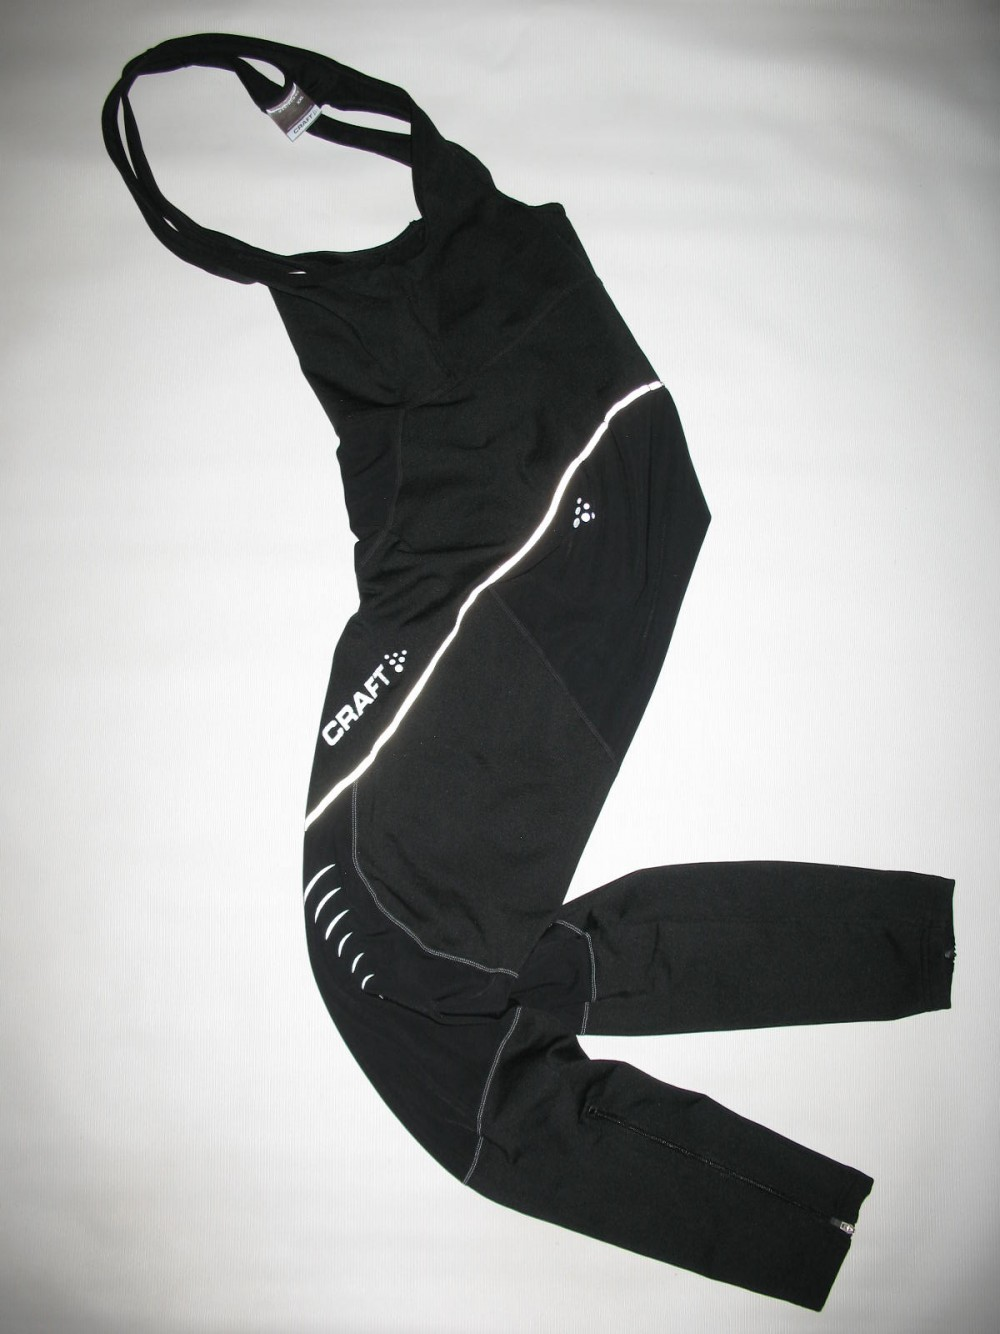 Велобрюки CRAFT thermal bib long tights (размер XXL) - 5